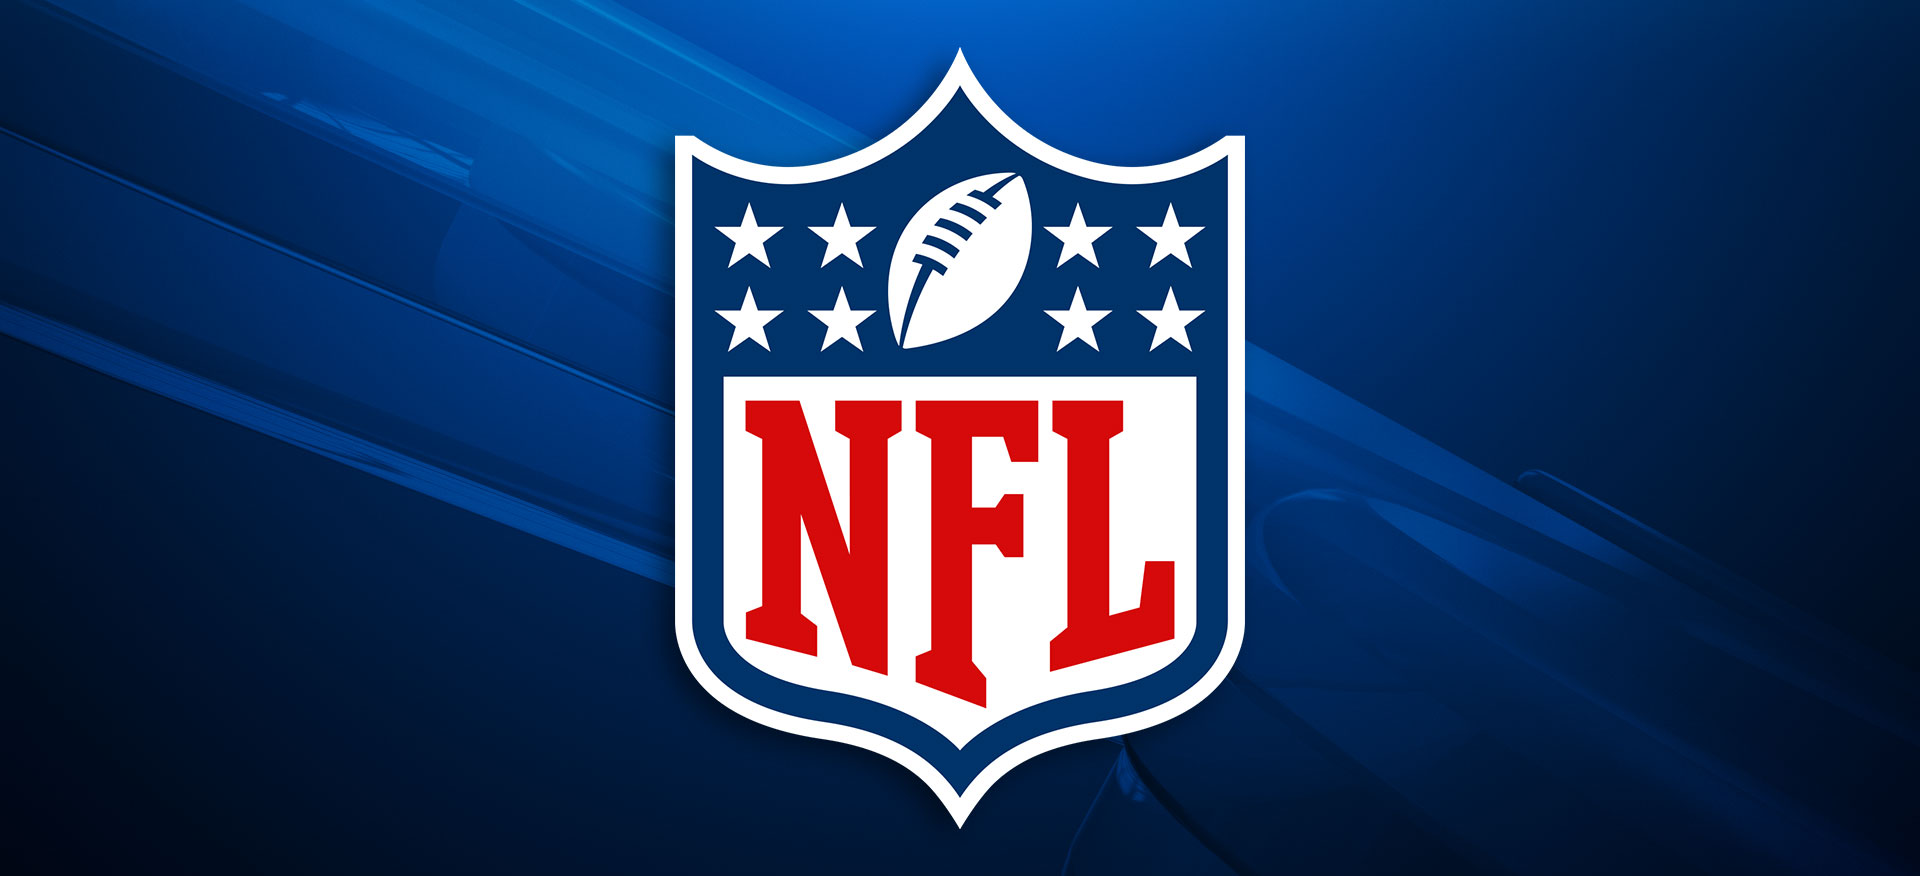 NFL Logo National Football League